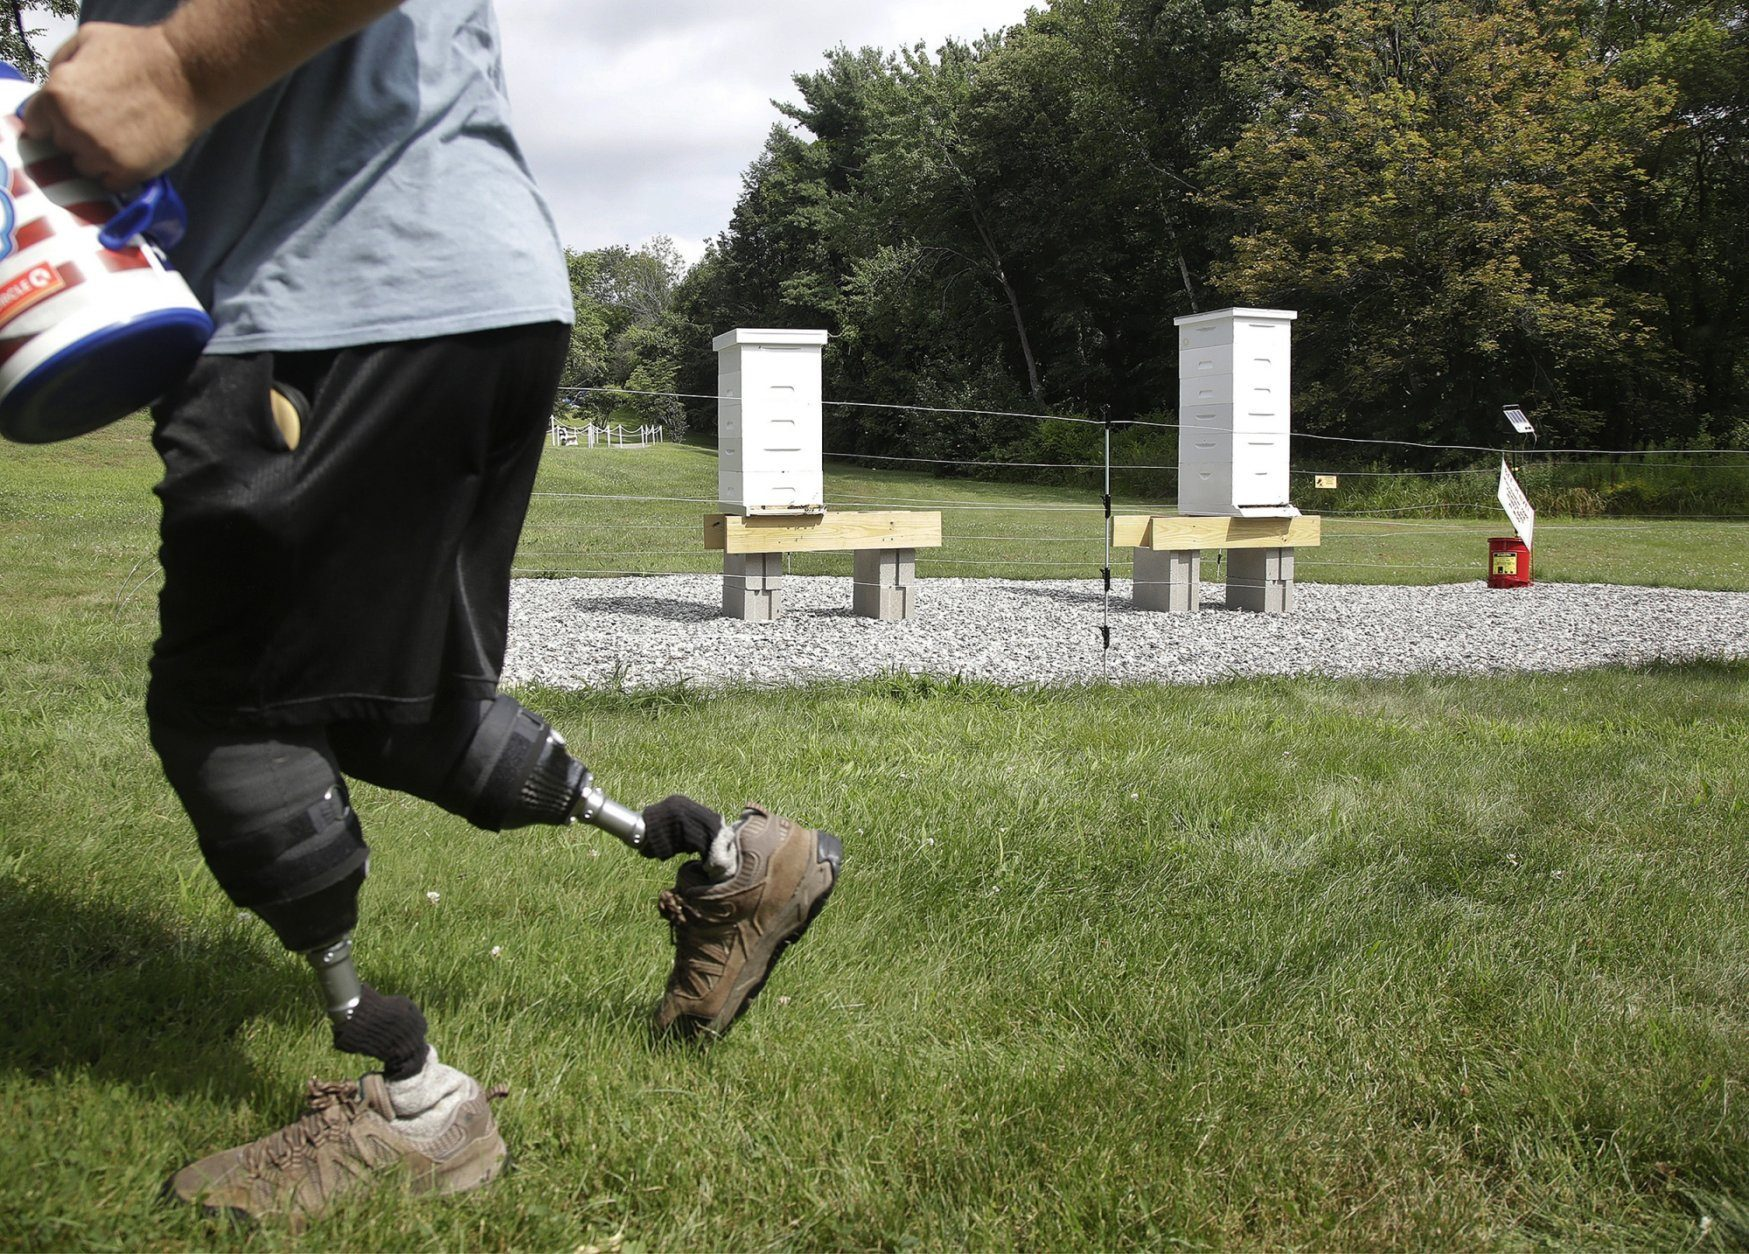 <p>In this Aug. 7, 2019 photo, U.S. Army veteran Oscar Toce cleans up after beekeeping at the Veterans Affairs&#8217; beehives in Manchester, N.H. Veterans Affairs has begun offering beekeeping at a few facilities including in New Hampshire and Michigan, and researchers are starting to study whether the practice has therapeutic benefits. (AP Photo/Elise Amendola)</p>